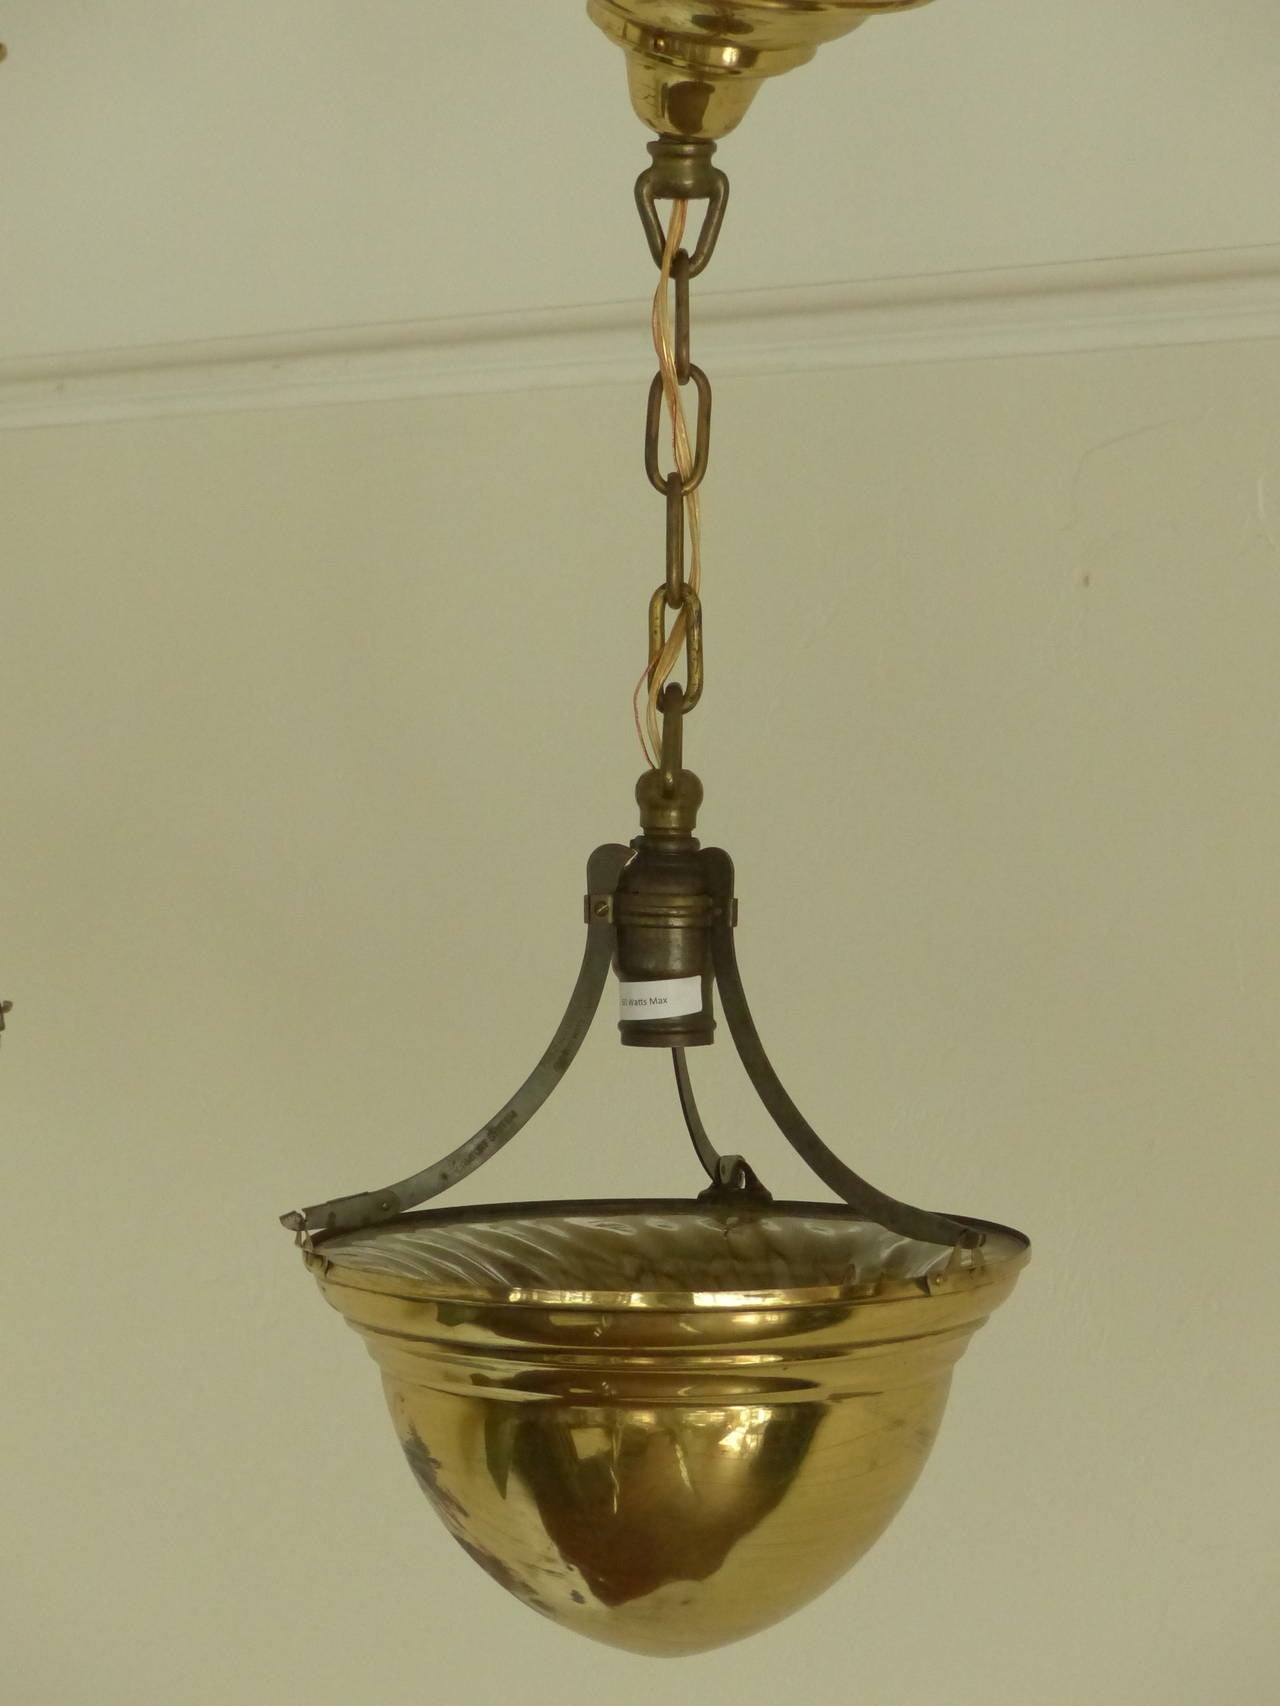 1920 brass cone ceiling light fixtures for sale at 1stdibs